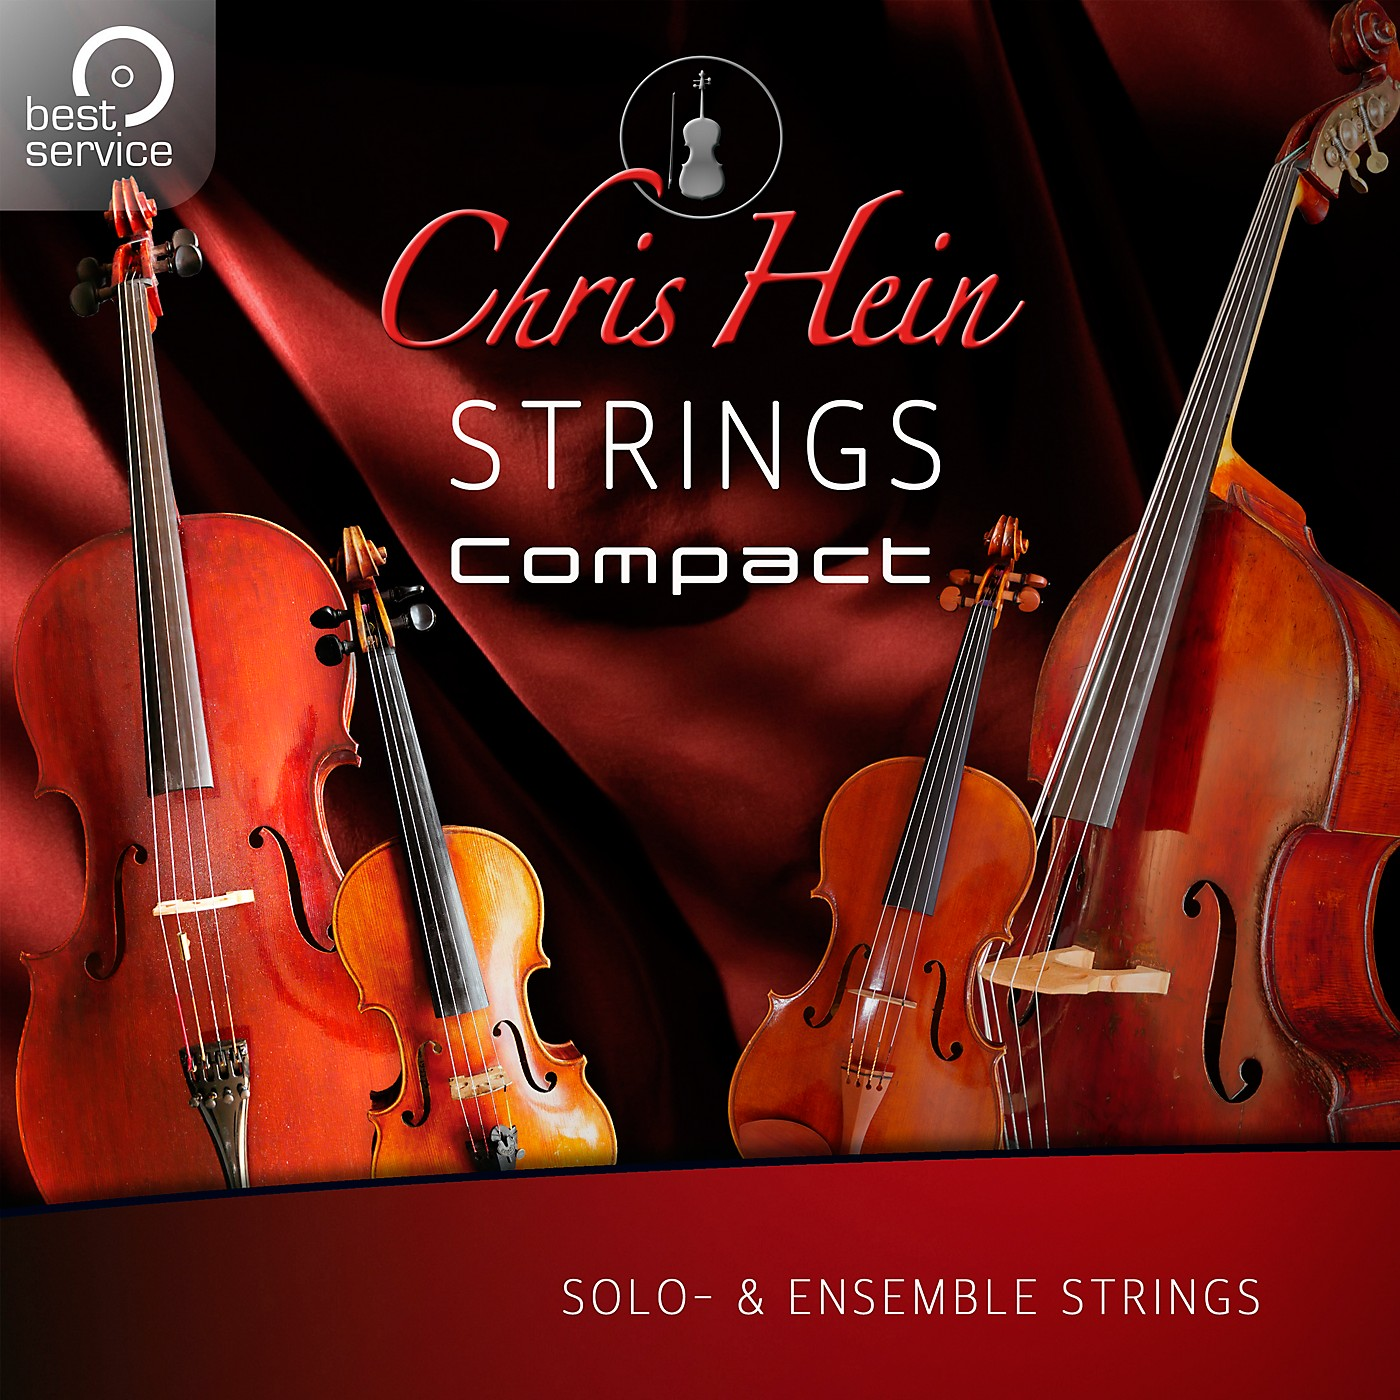 Best Service Chris Hein Strings Compact (Download) thumbnail